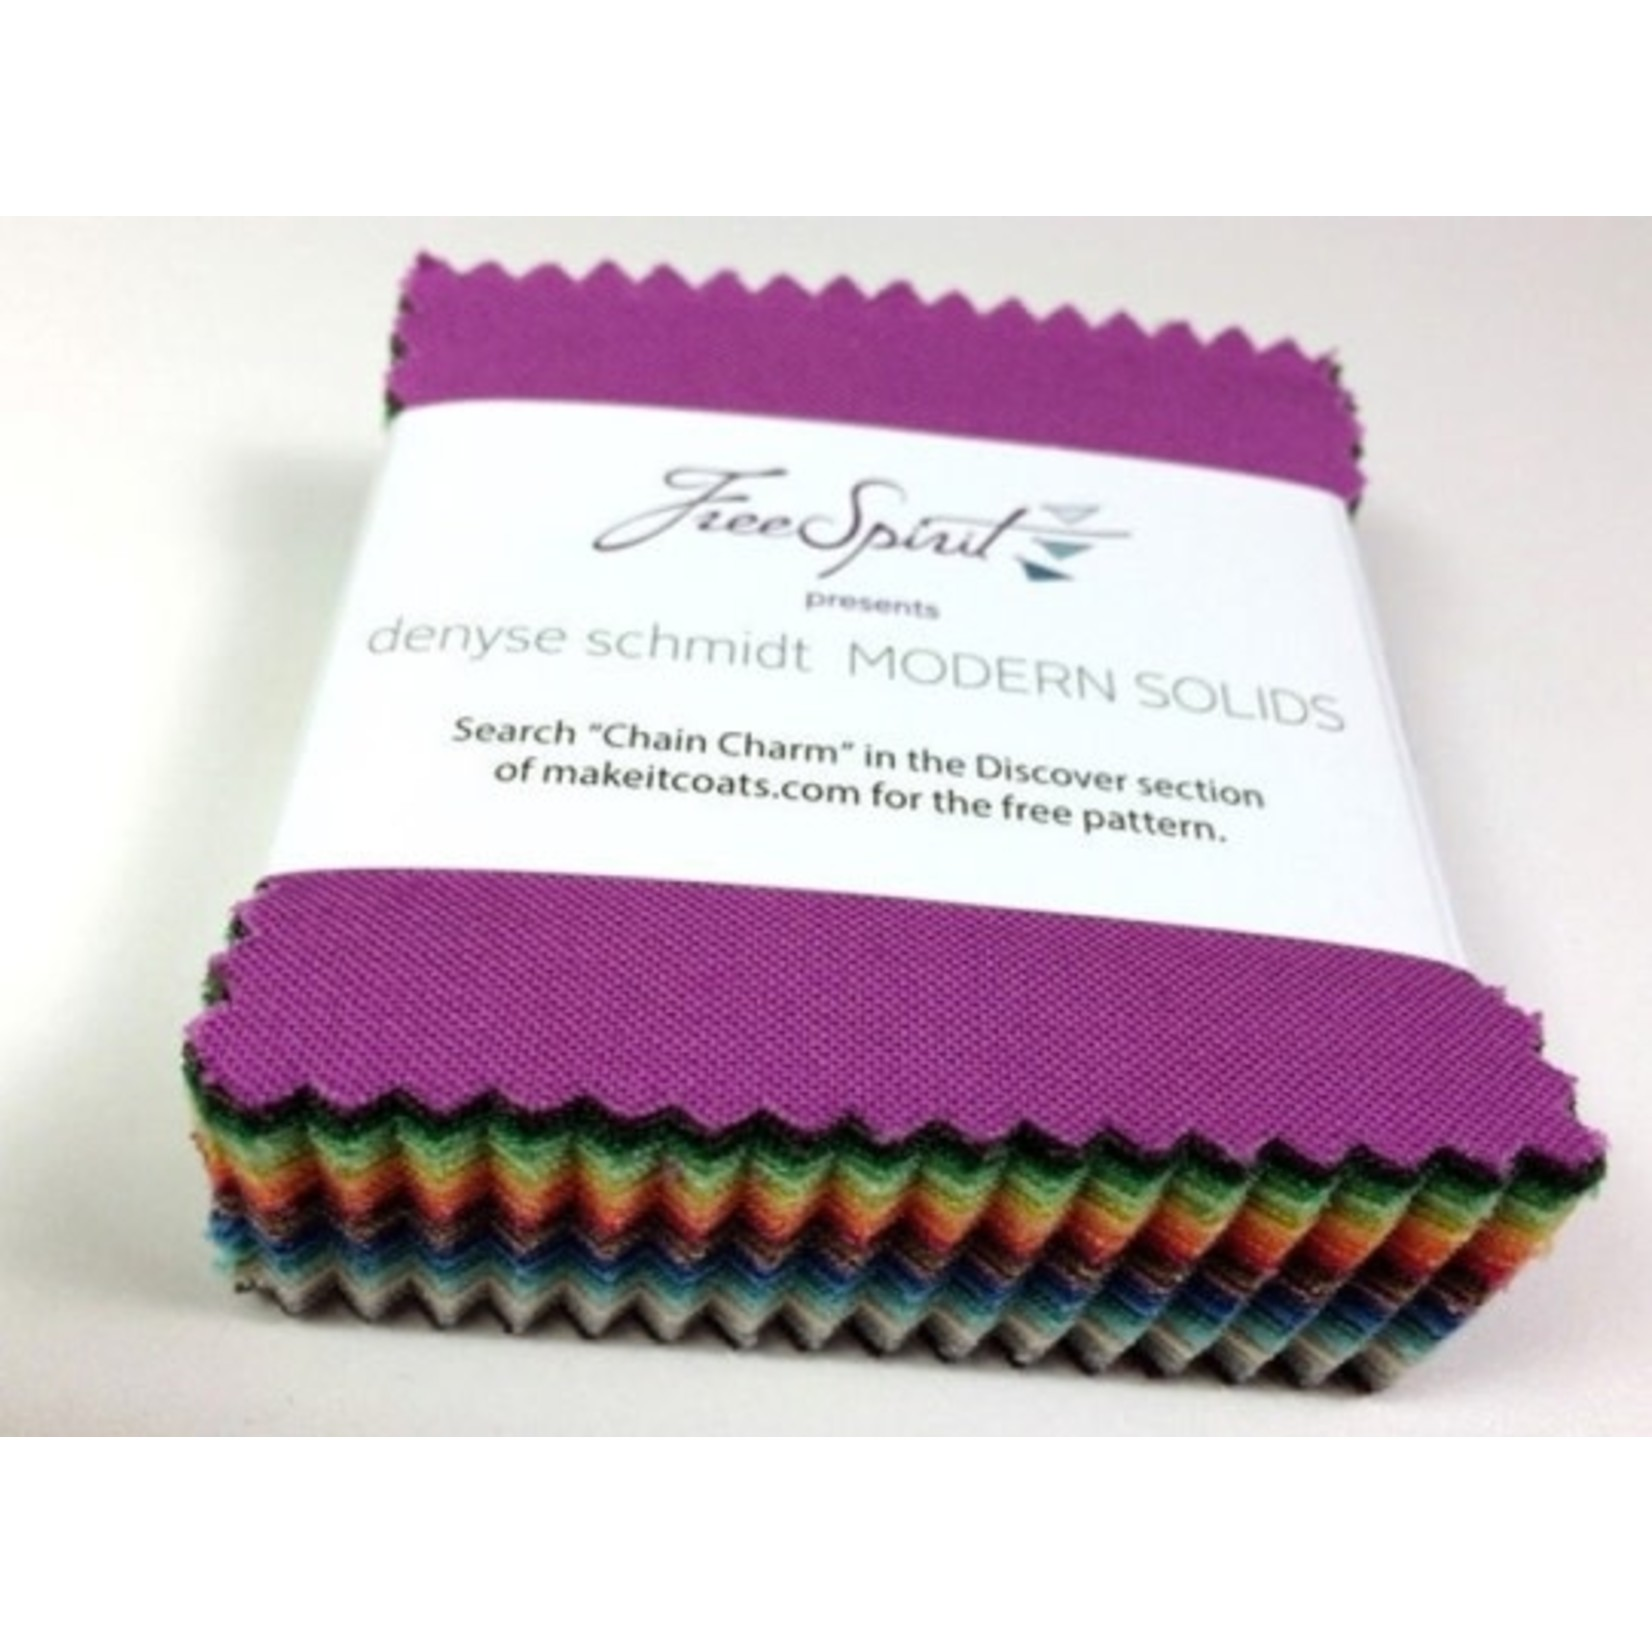 "FREE SPIRIT Modern Solids 2.5"" squares - 75 colours"